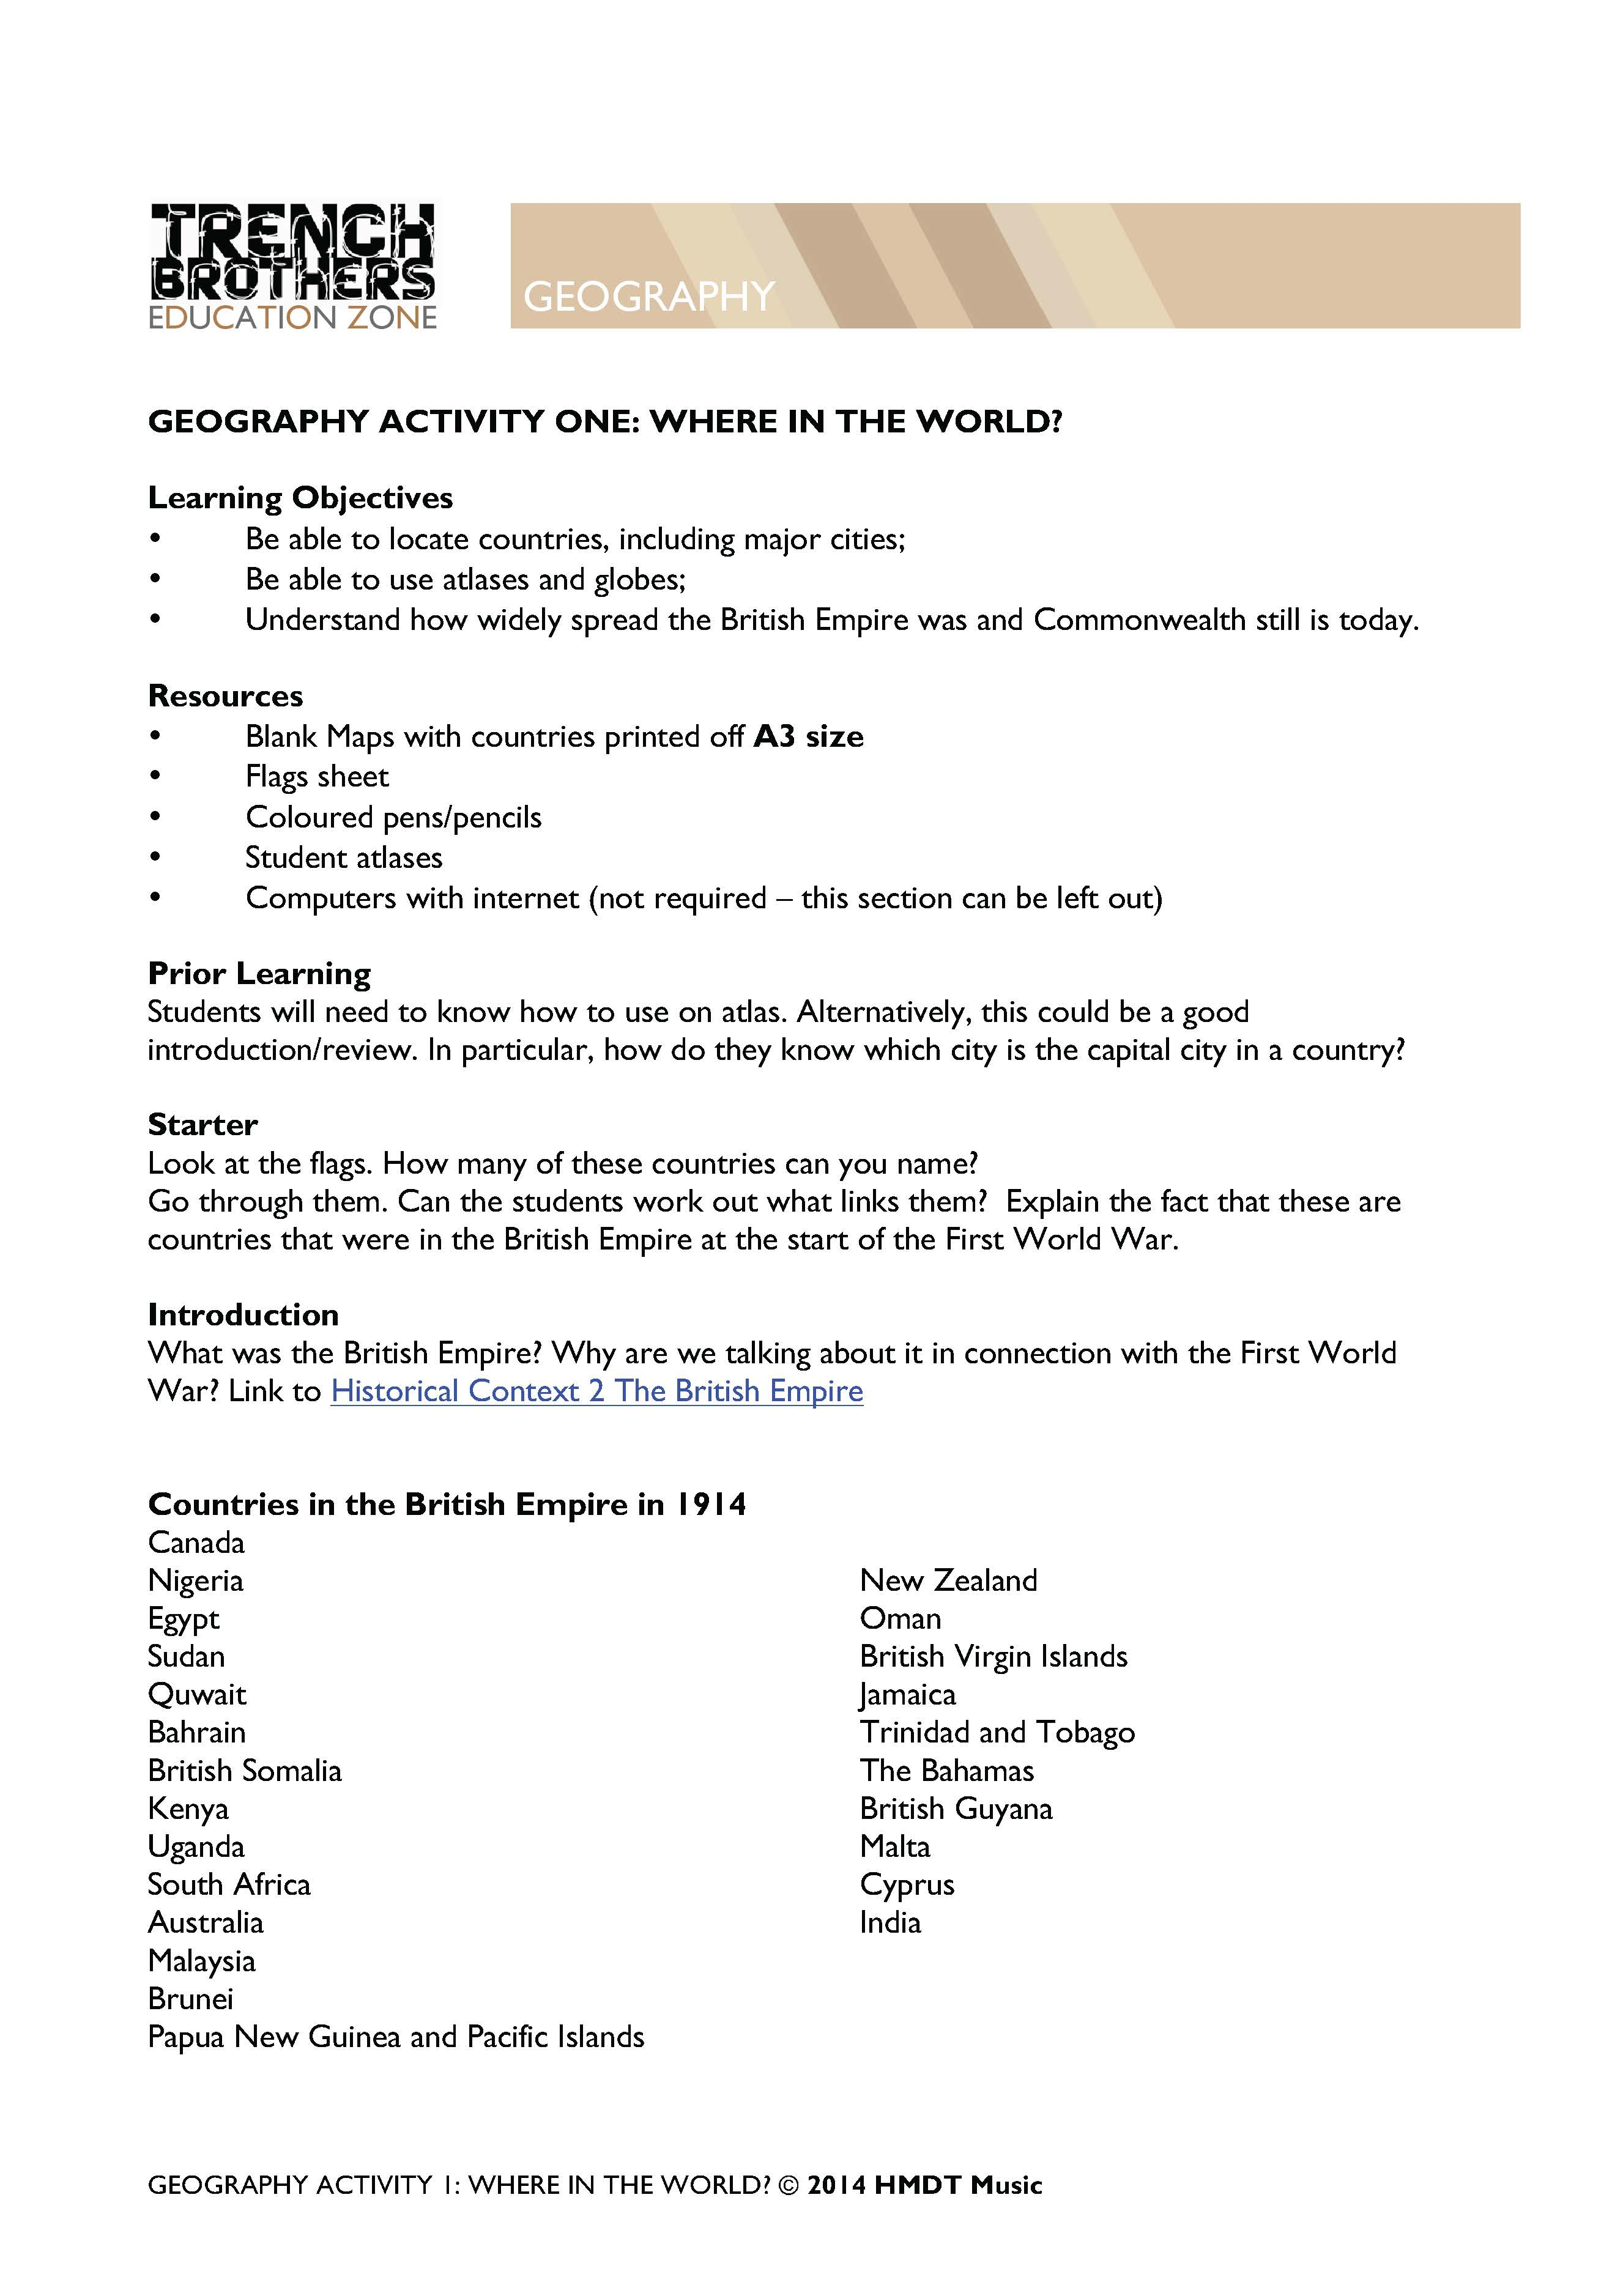 world war ii worksheets – muzjikmandia info together with Odqyodqlnbuzw High Quality Map Of Europe Blank Map Worksheet further  in addition Free Worksheets Liry   Download and Print Worksheets   Free on in addition Civil War Map Worksheets Printable For All Download And With Regard moreover 3 World War Ii Europe Map Worksheet Answer Key – parachinar info additionally European Theater Map moreover Second World War Colouring Map English Romanian   Second World further Europe After World War 1 Map Worksheet Answers   World Maps likewise 6  Geography   Trenchbrothers Teaching Resources as well World War 2 Worksheets Food Rationing During World War Ii Worksheet as well Unit 8 Imperialism World War I New Us Map Worksheet 16   roaaar me further Europe After World War 1 Map Worksheet Answers Ww2 Map Of Europe Map also North 50 World War 2 In Europe And Africa Map Worksheet – stumbleweb likewise Lesson Plan   An Understanding of World War II likewise Worksheets Teaching Ww2 Ks1 World War 2 – egyptcities info. on world war i map worksheet